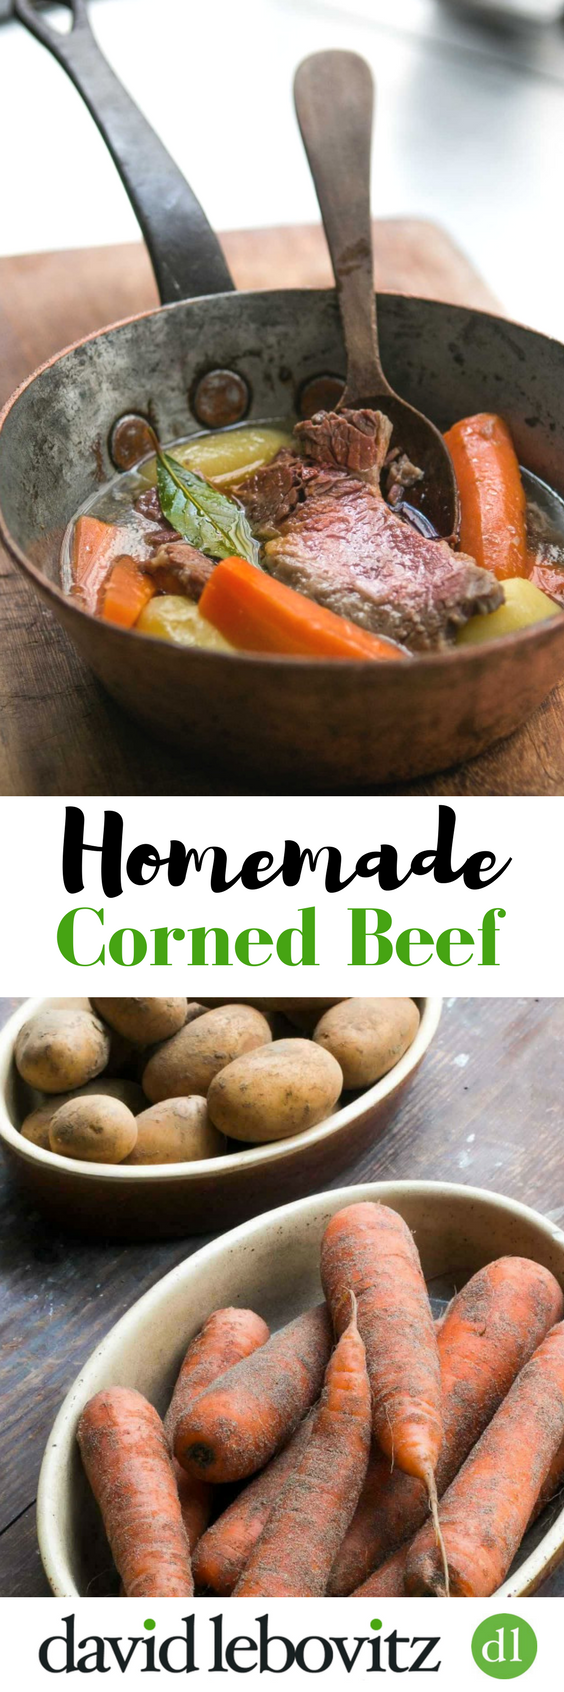 Better than store-bought, you can make classic corned beef from scratch...at home!